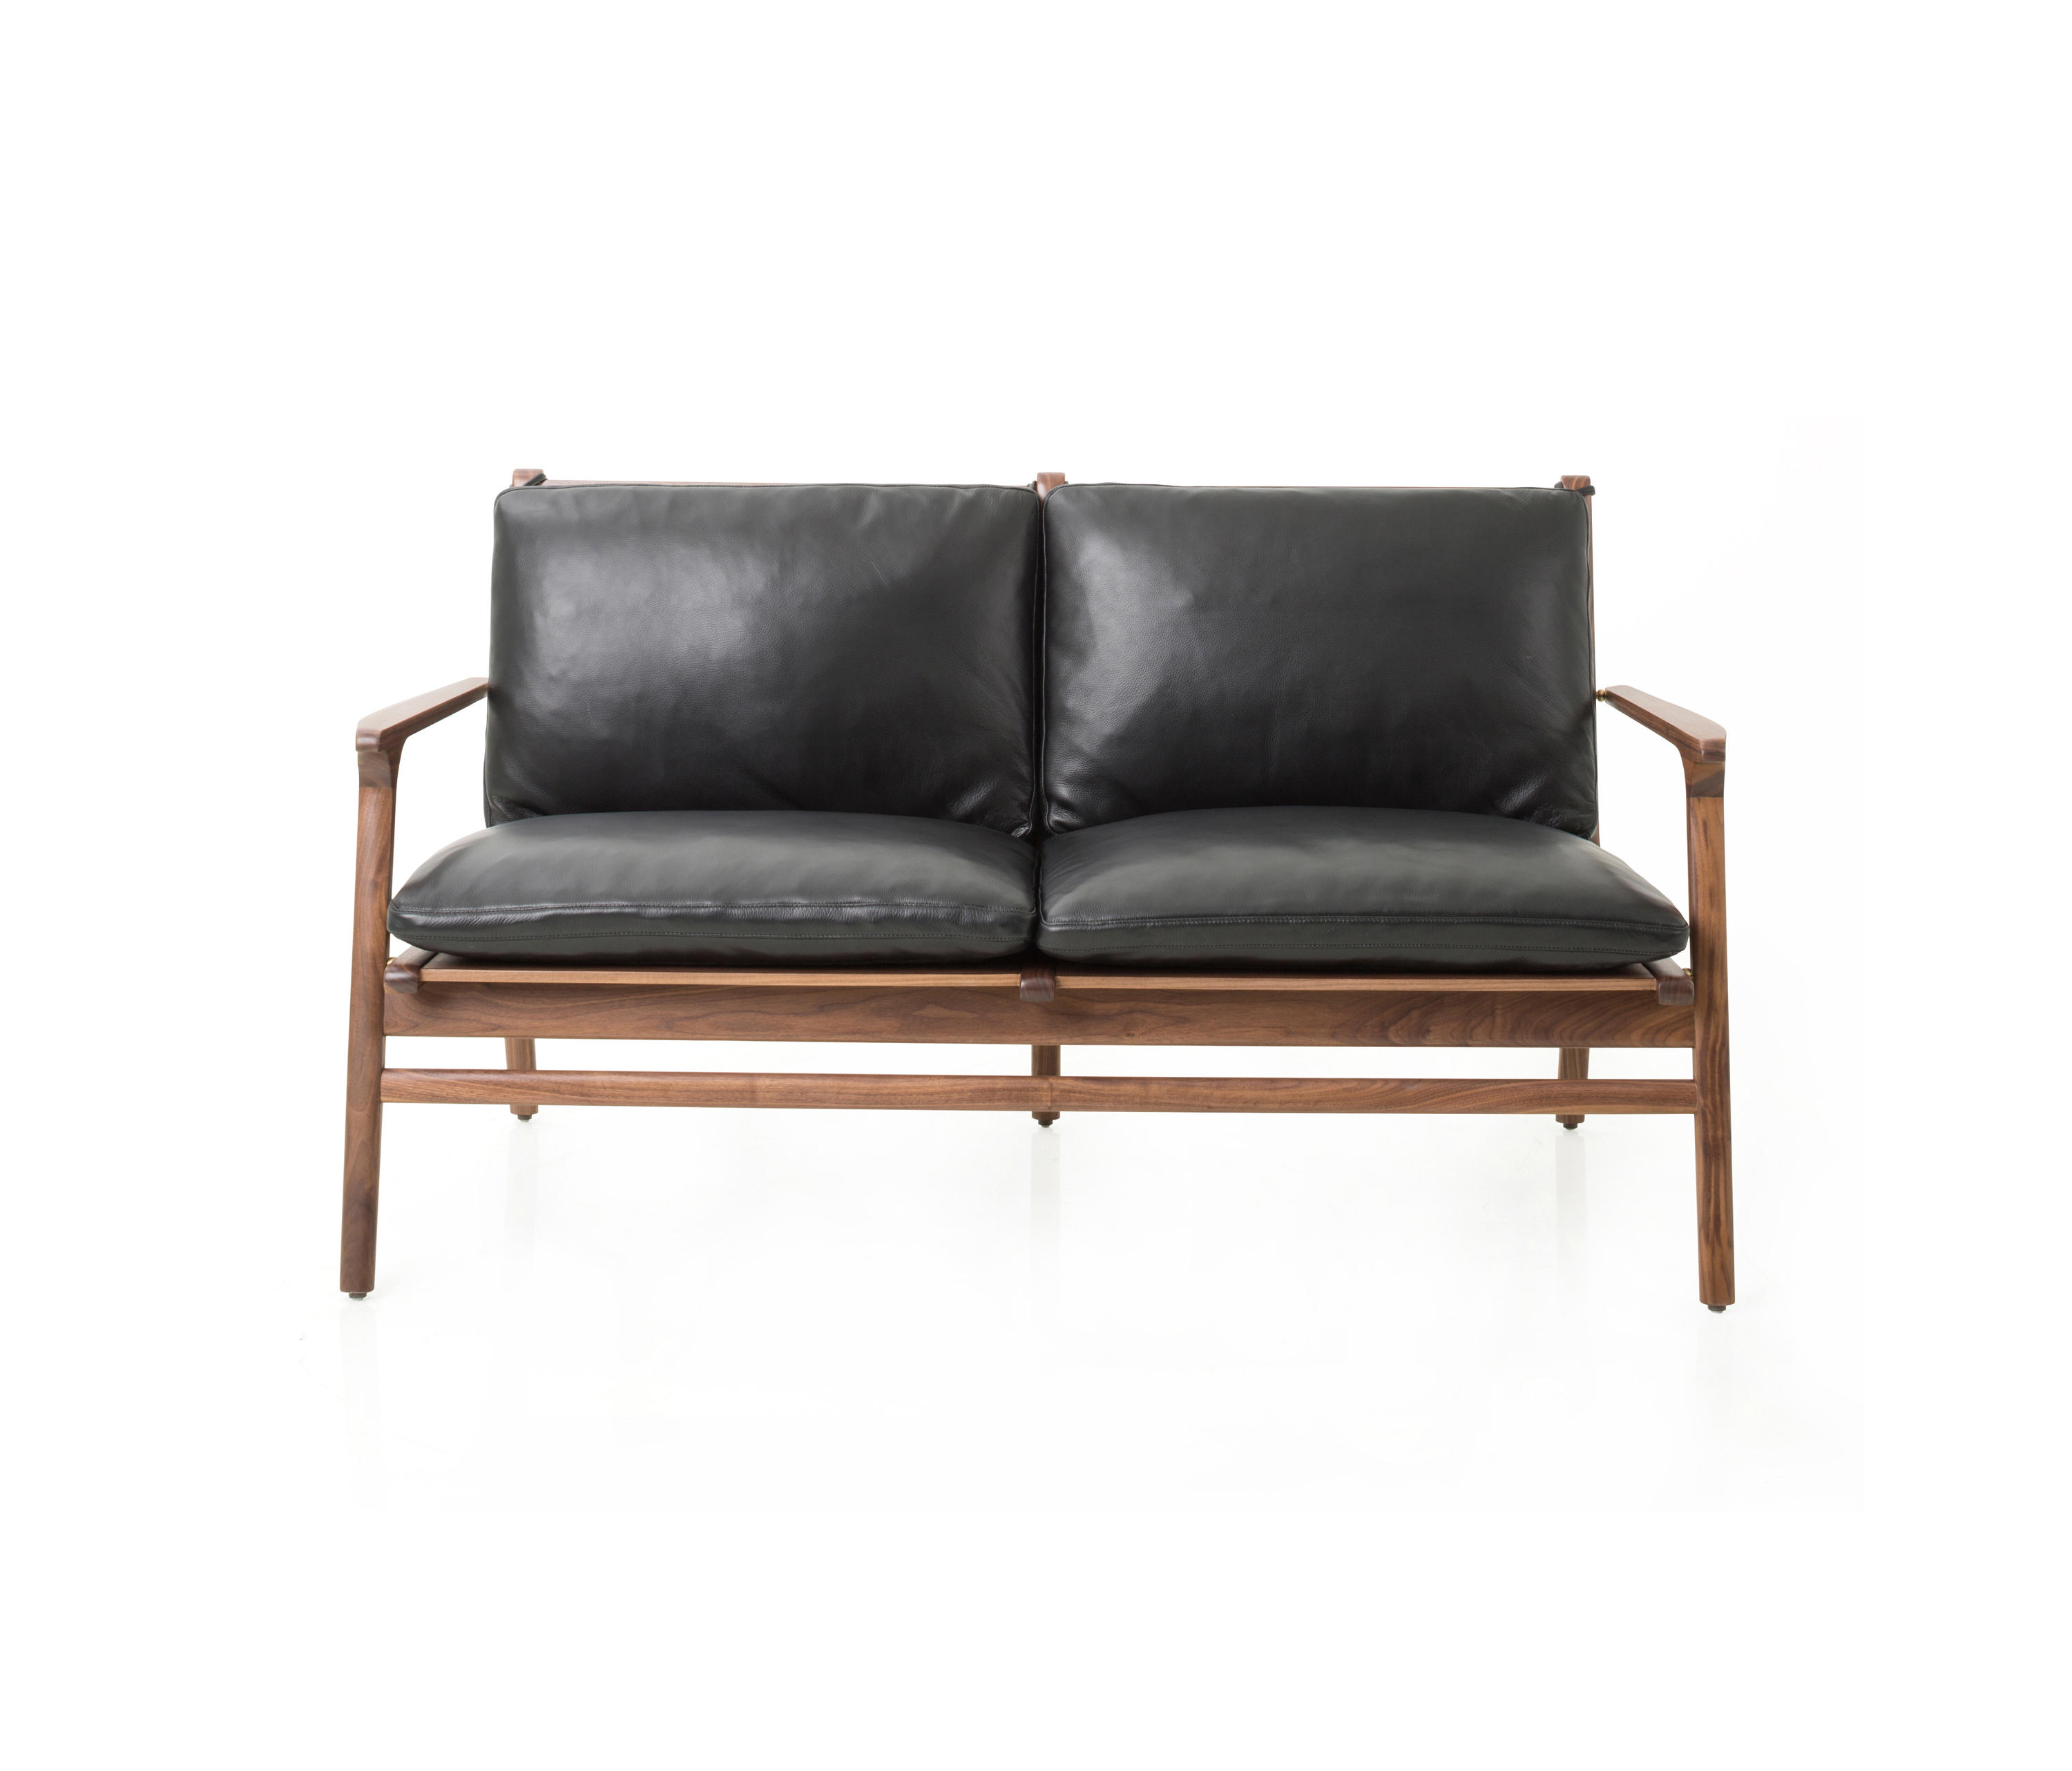 R 201 N Lounge Chair Two Seater Sofas From Stellar Works